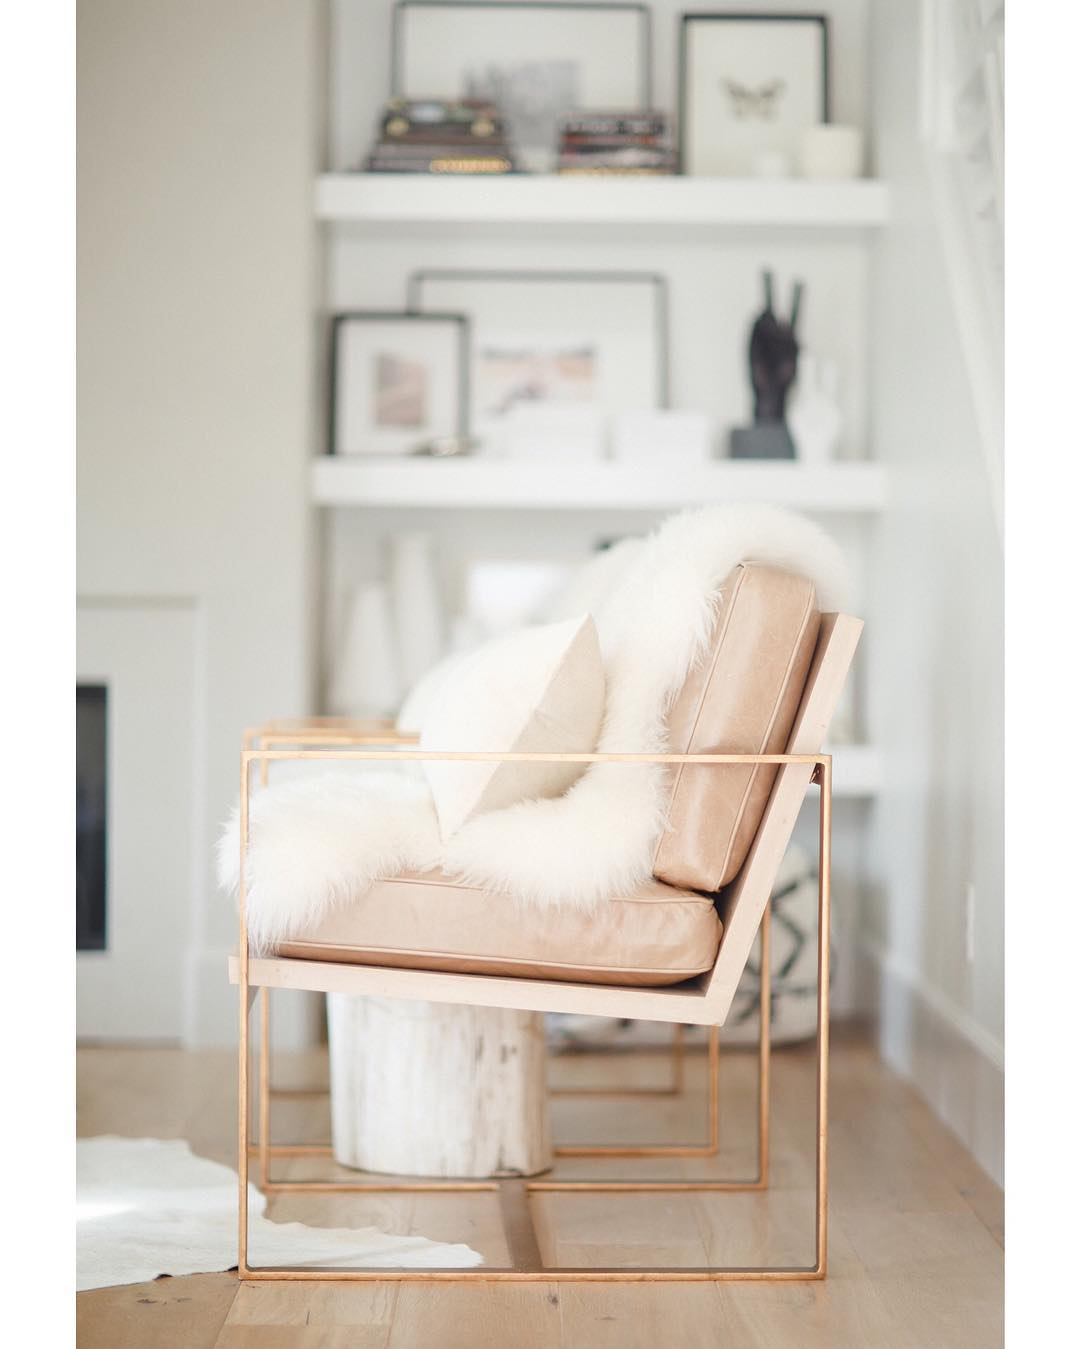 Cb2 Icelandic Sheepskin Throw Copycatchic